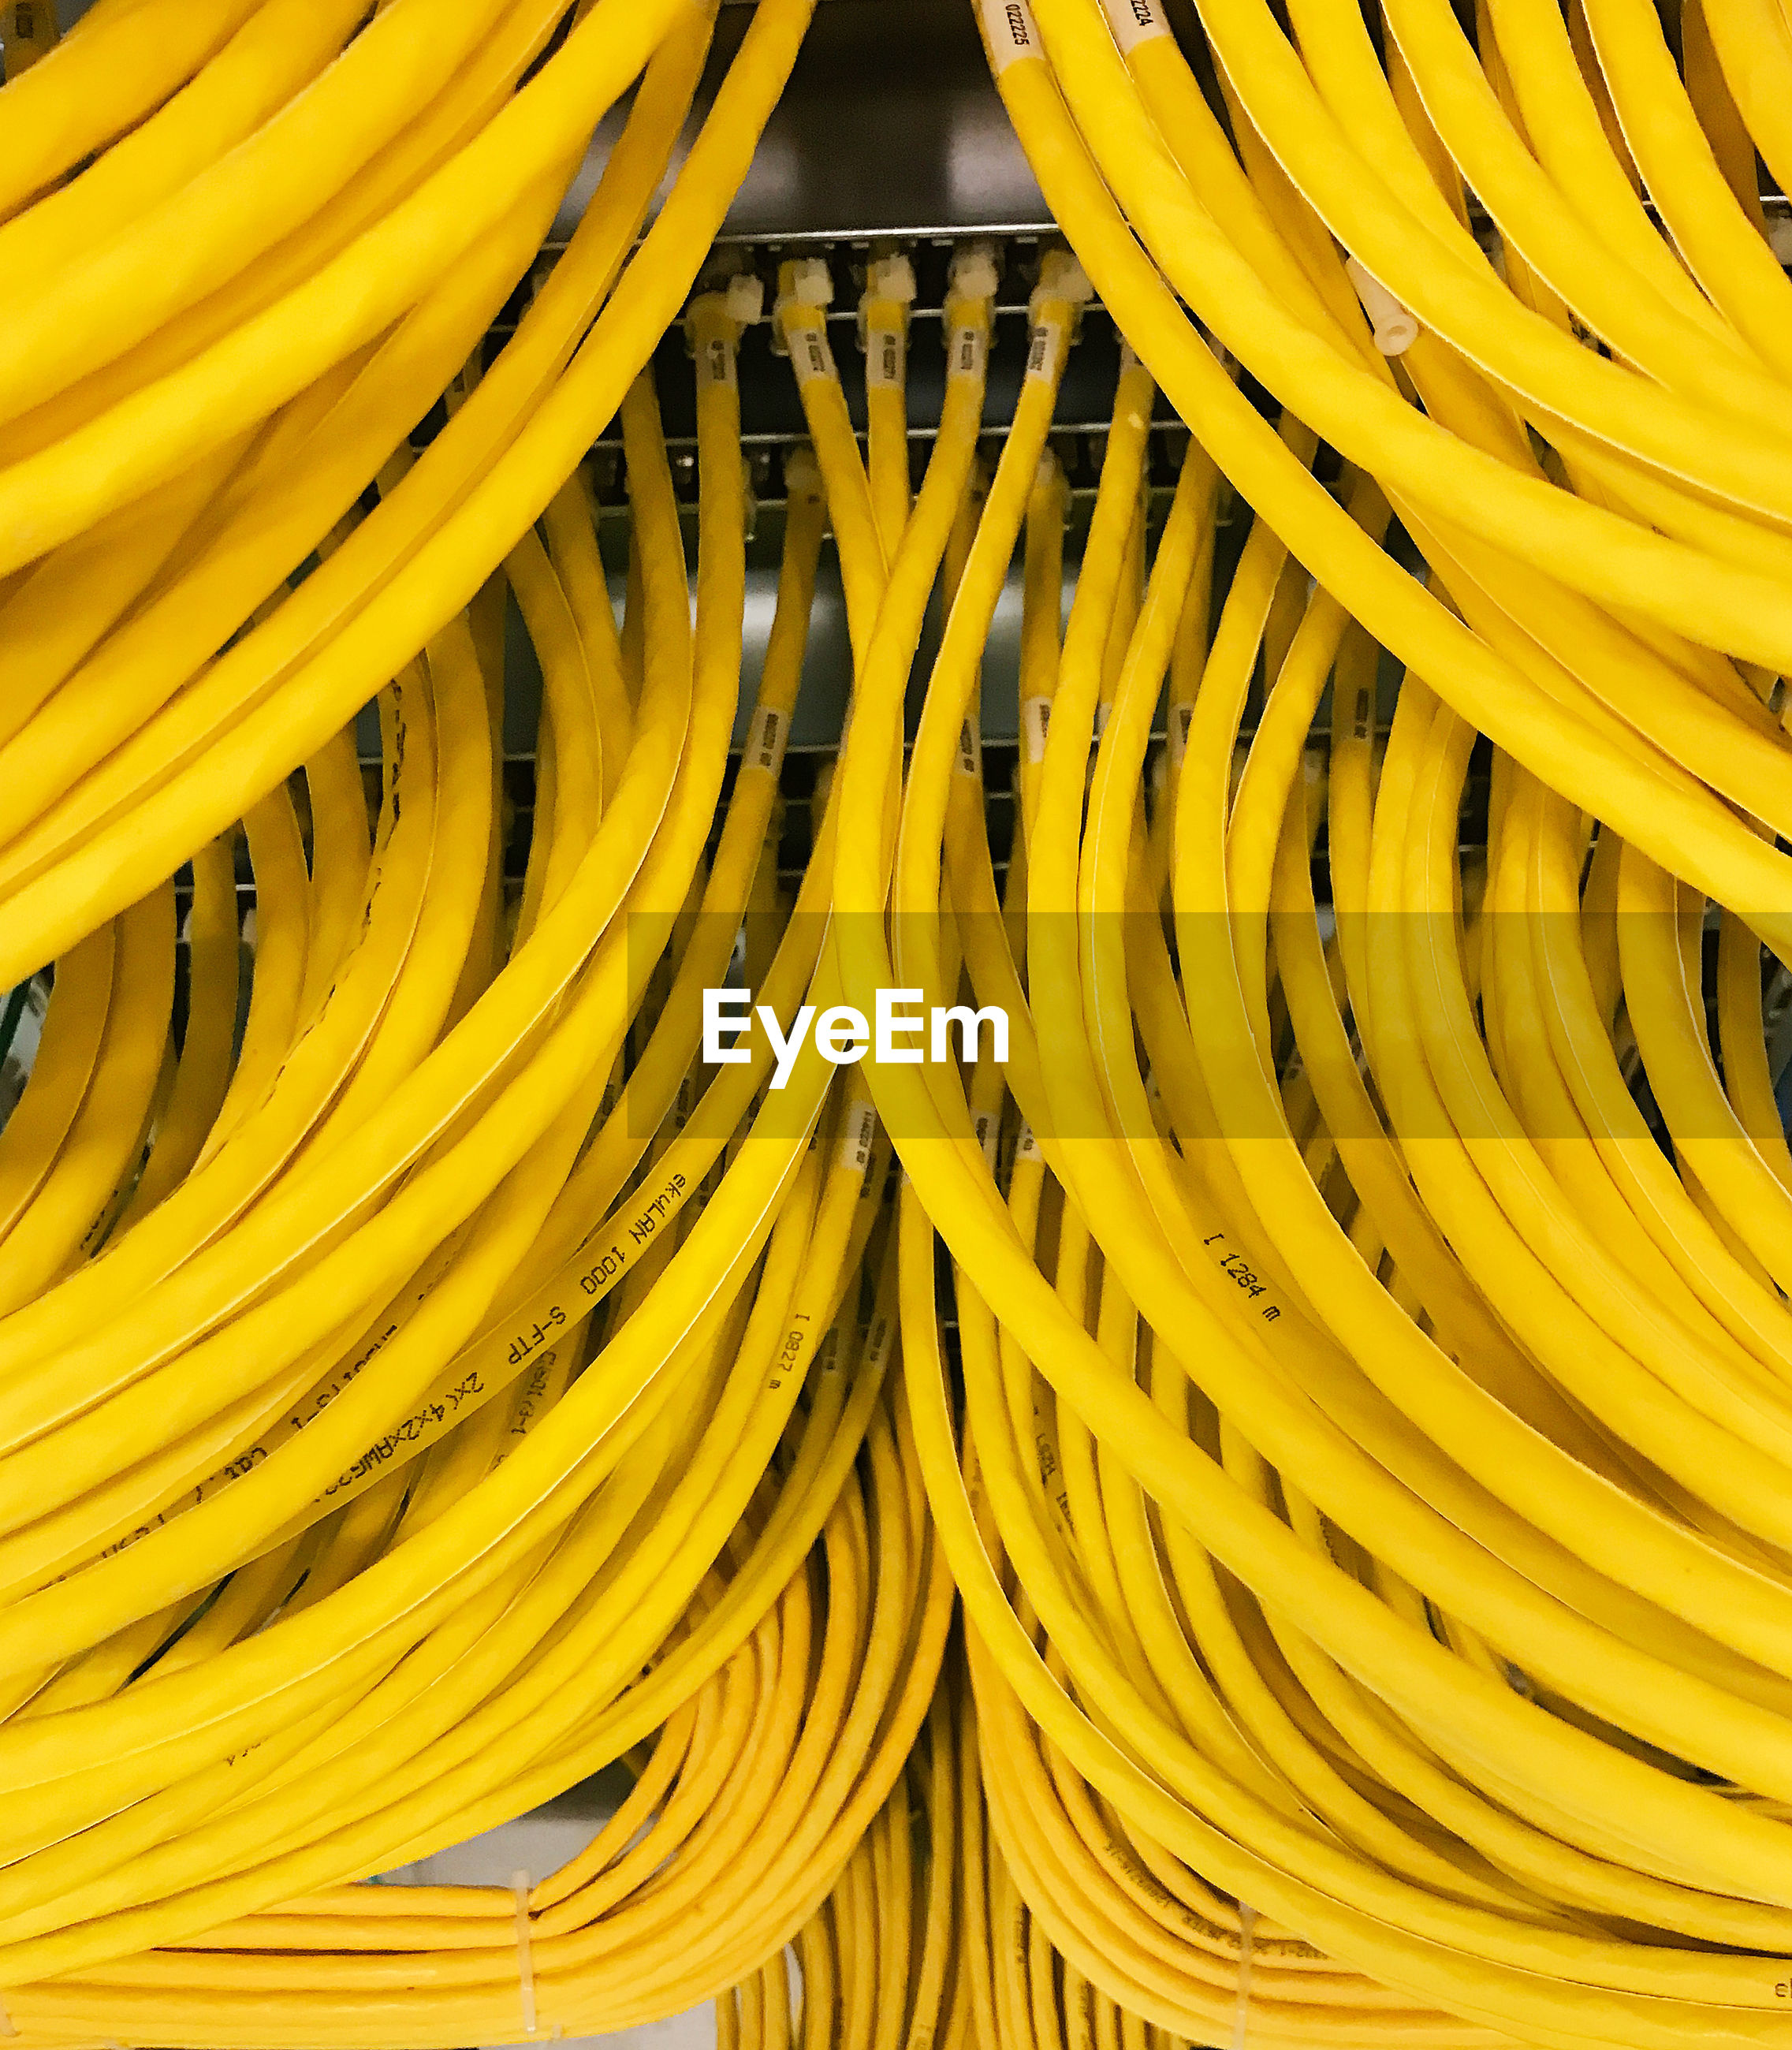 Full frame shot of yellow cables